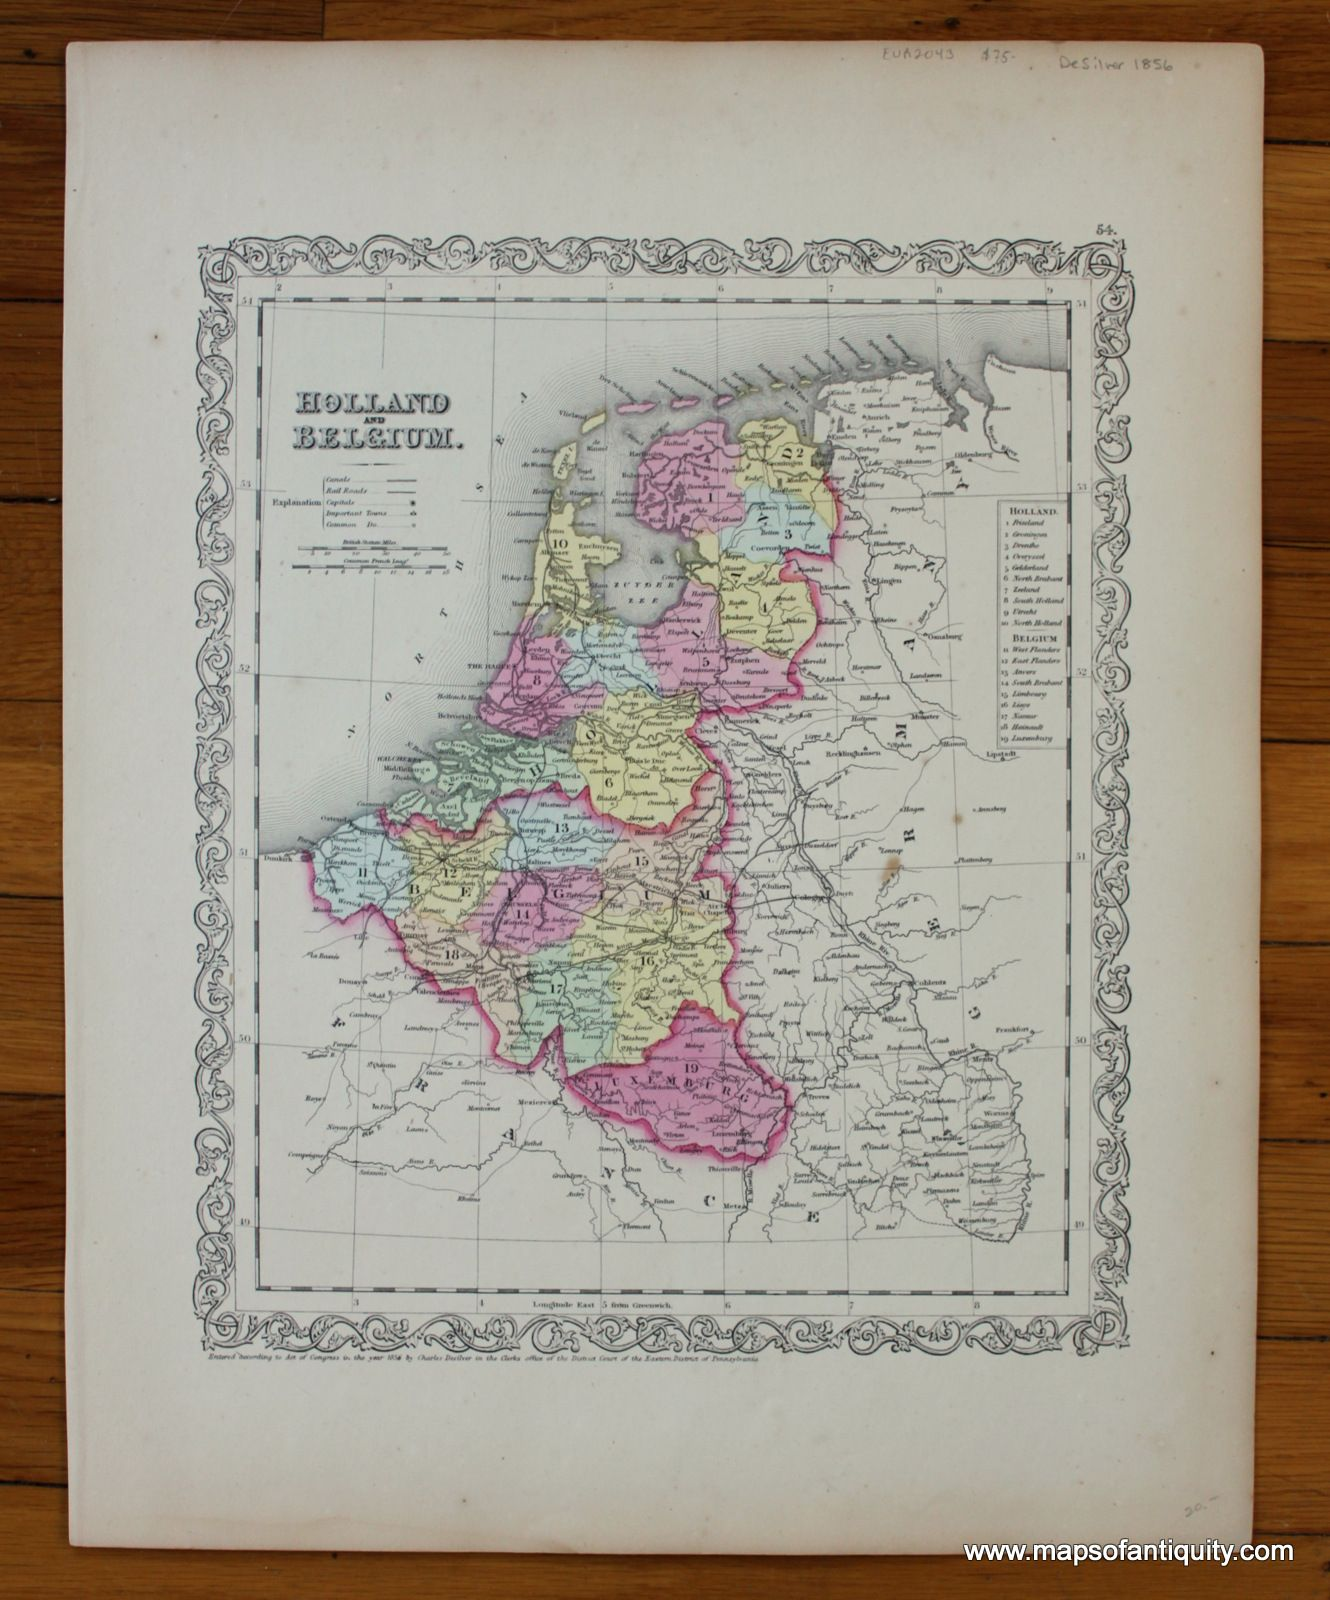 Antique 1856 map of Holland and Belgium with decorative border